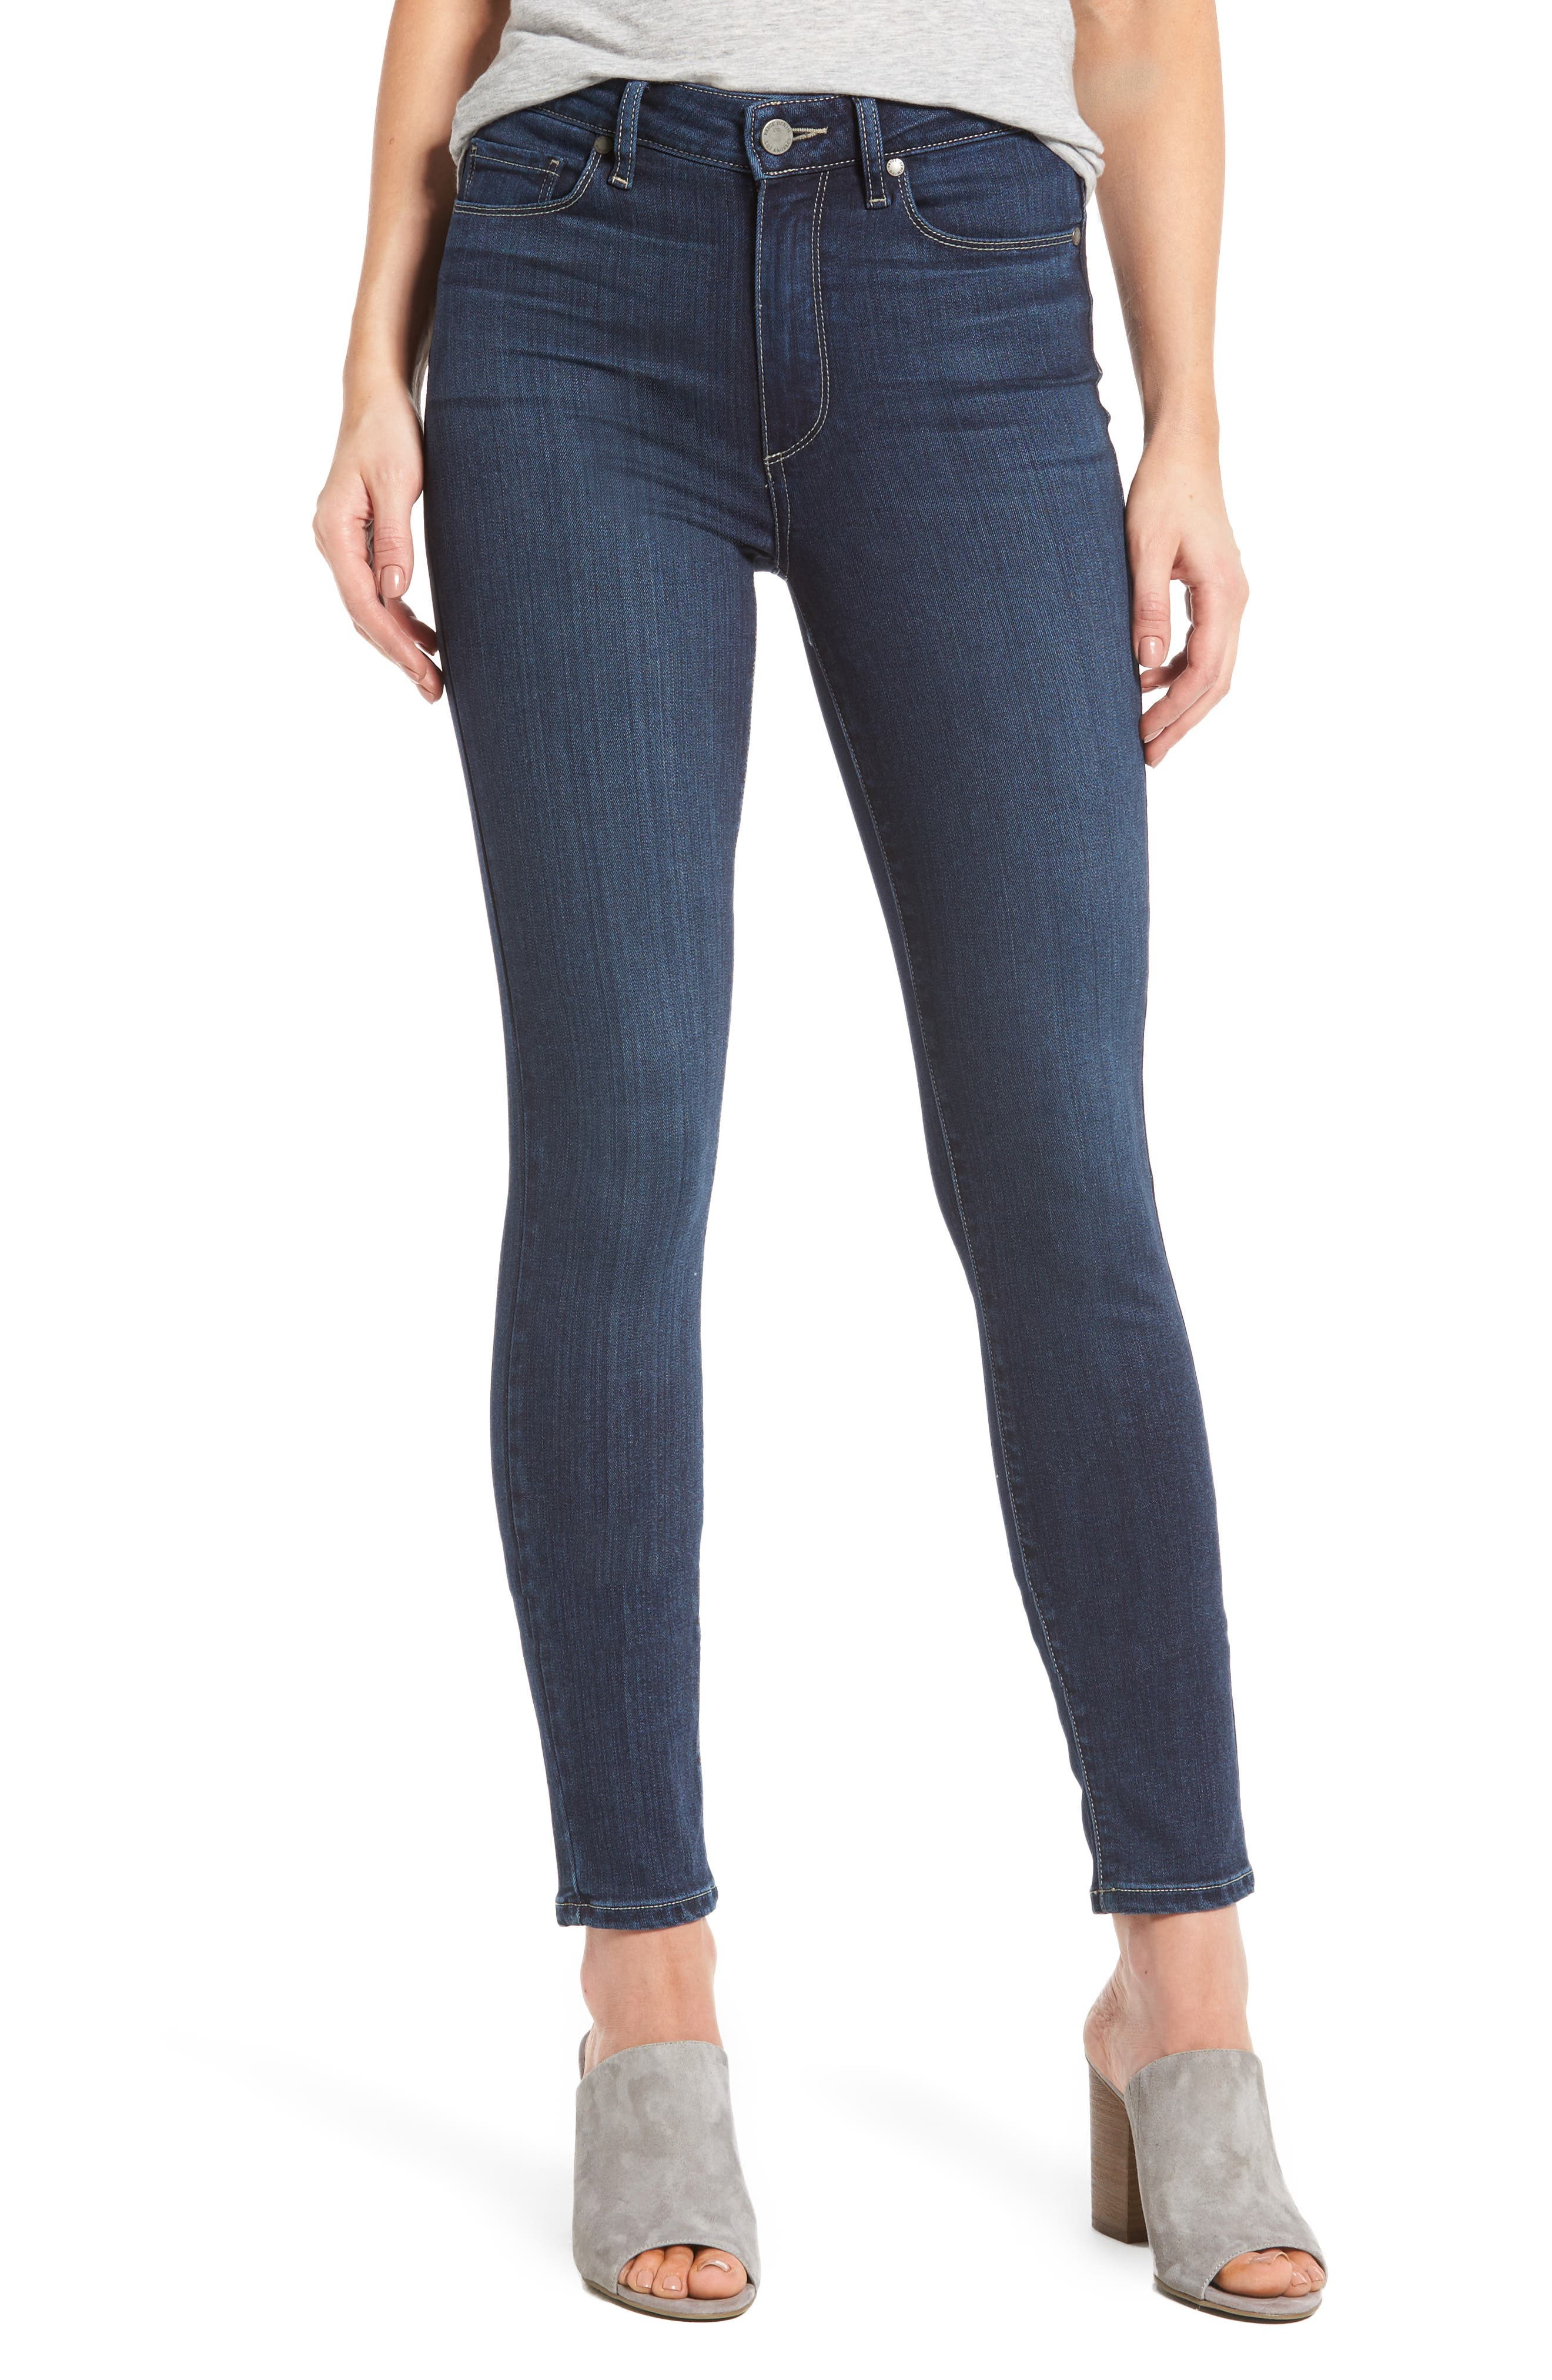 Hoxton High Waist Ankle Skinny Jeans,                         Main,                         color, Charing